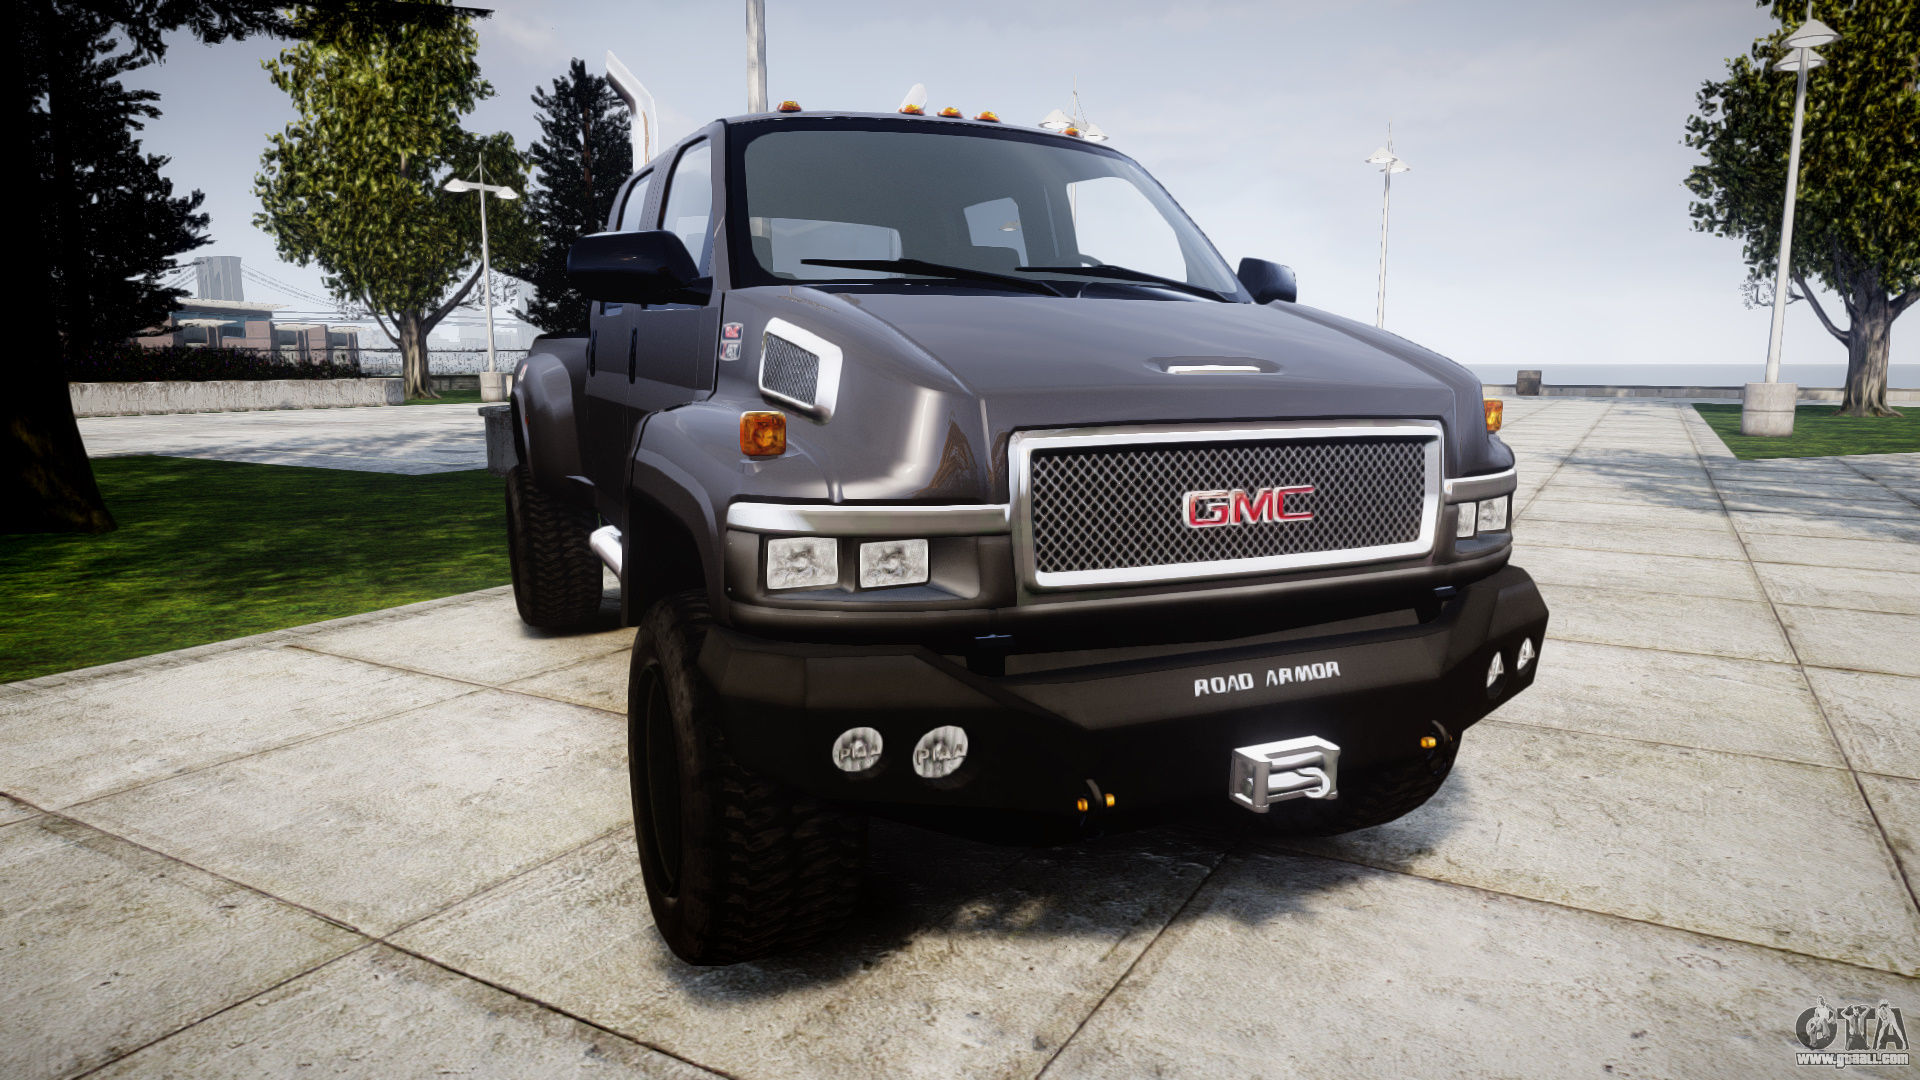 Gmc c4500 Photo and Video Review. Comments.